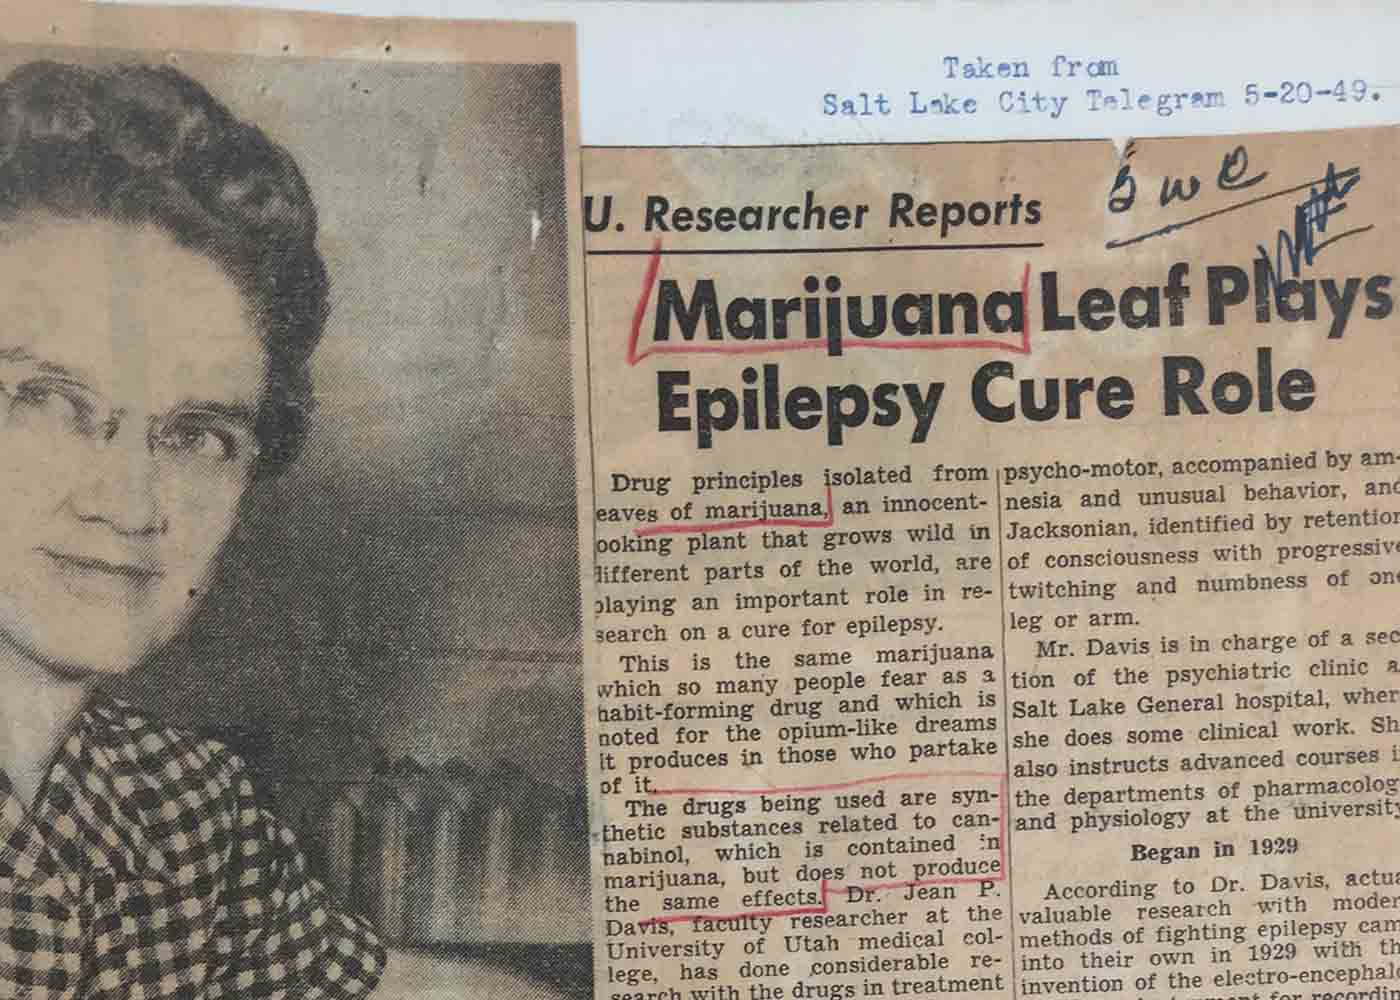 cannabis plays role in epilepsy cure since 1949